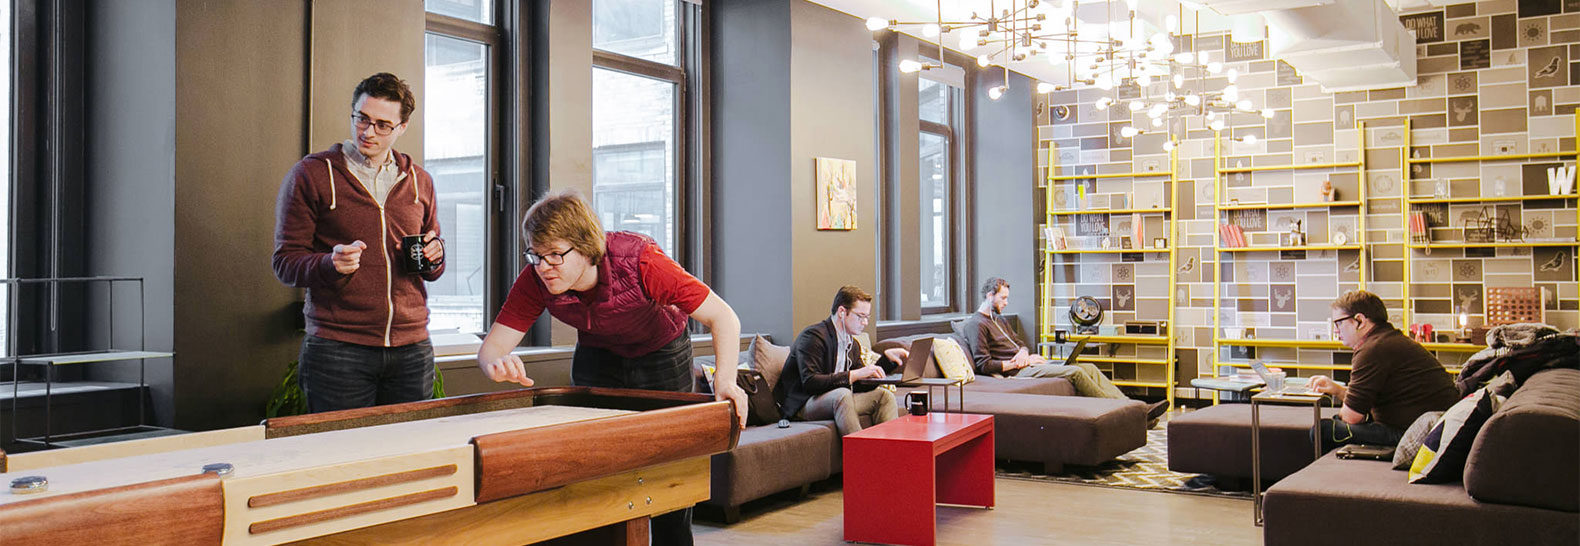 How To Design Spaces For People With >> 10 Brilliant Communal Designs Helping People Work And Live